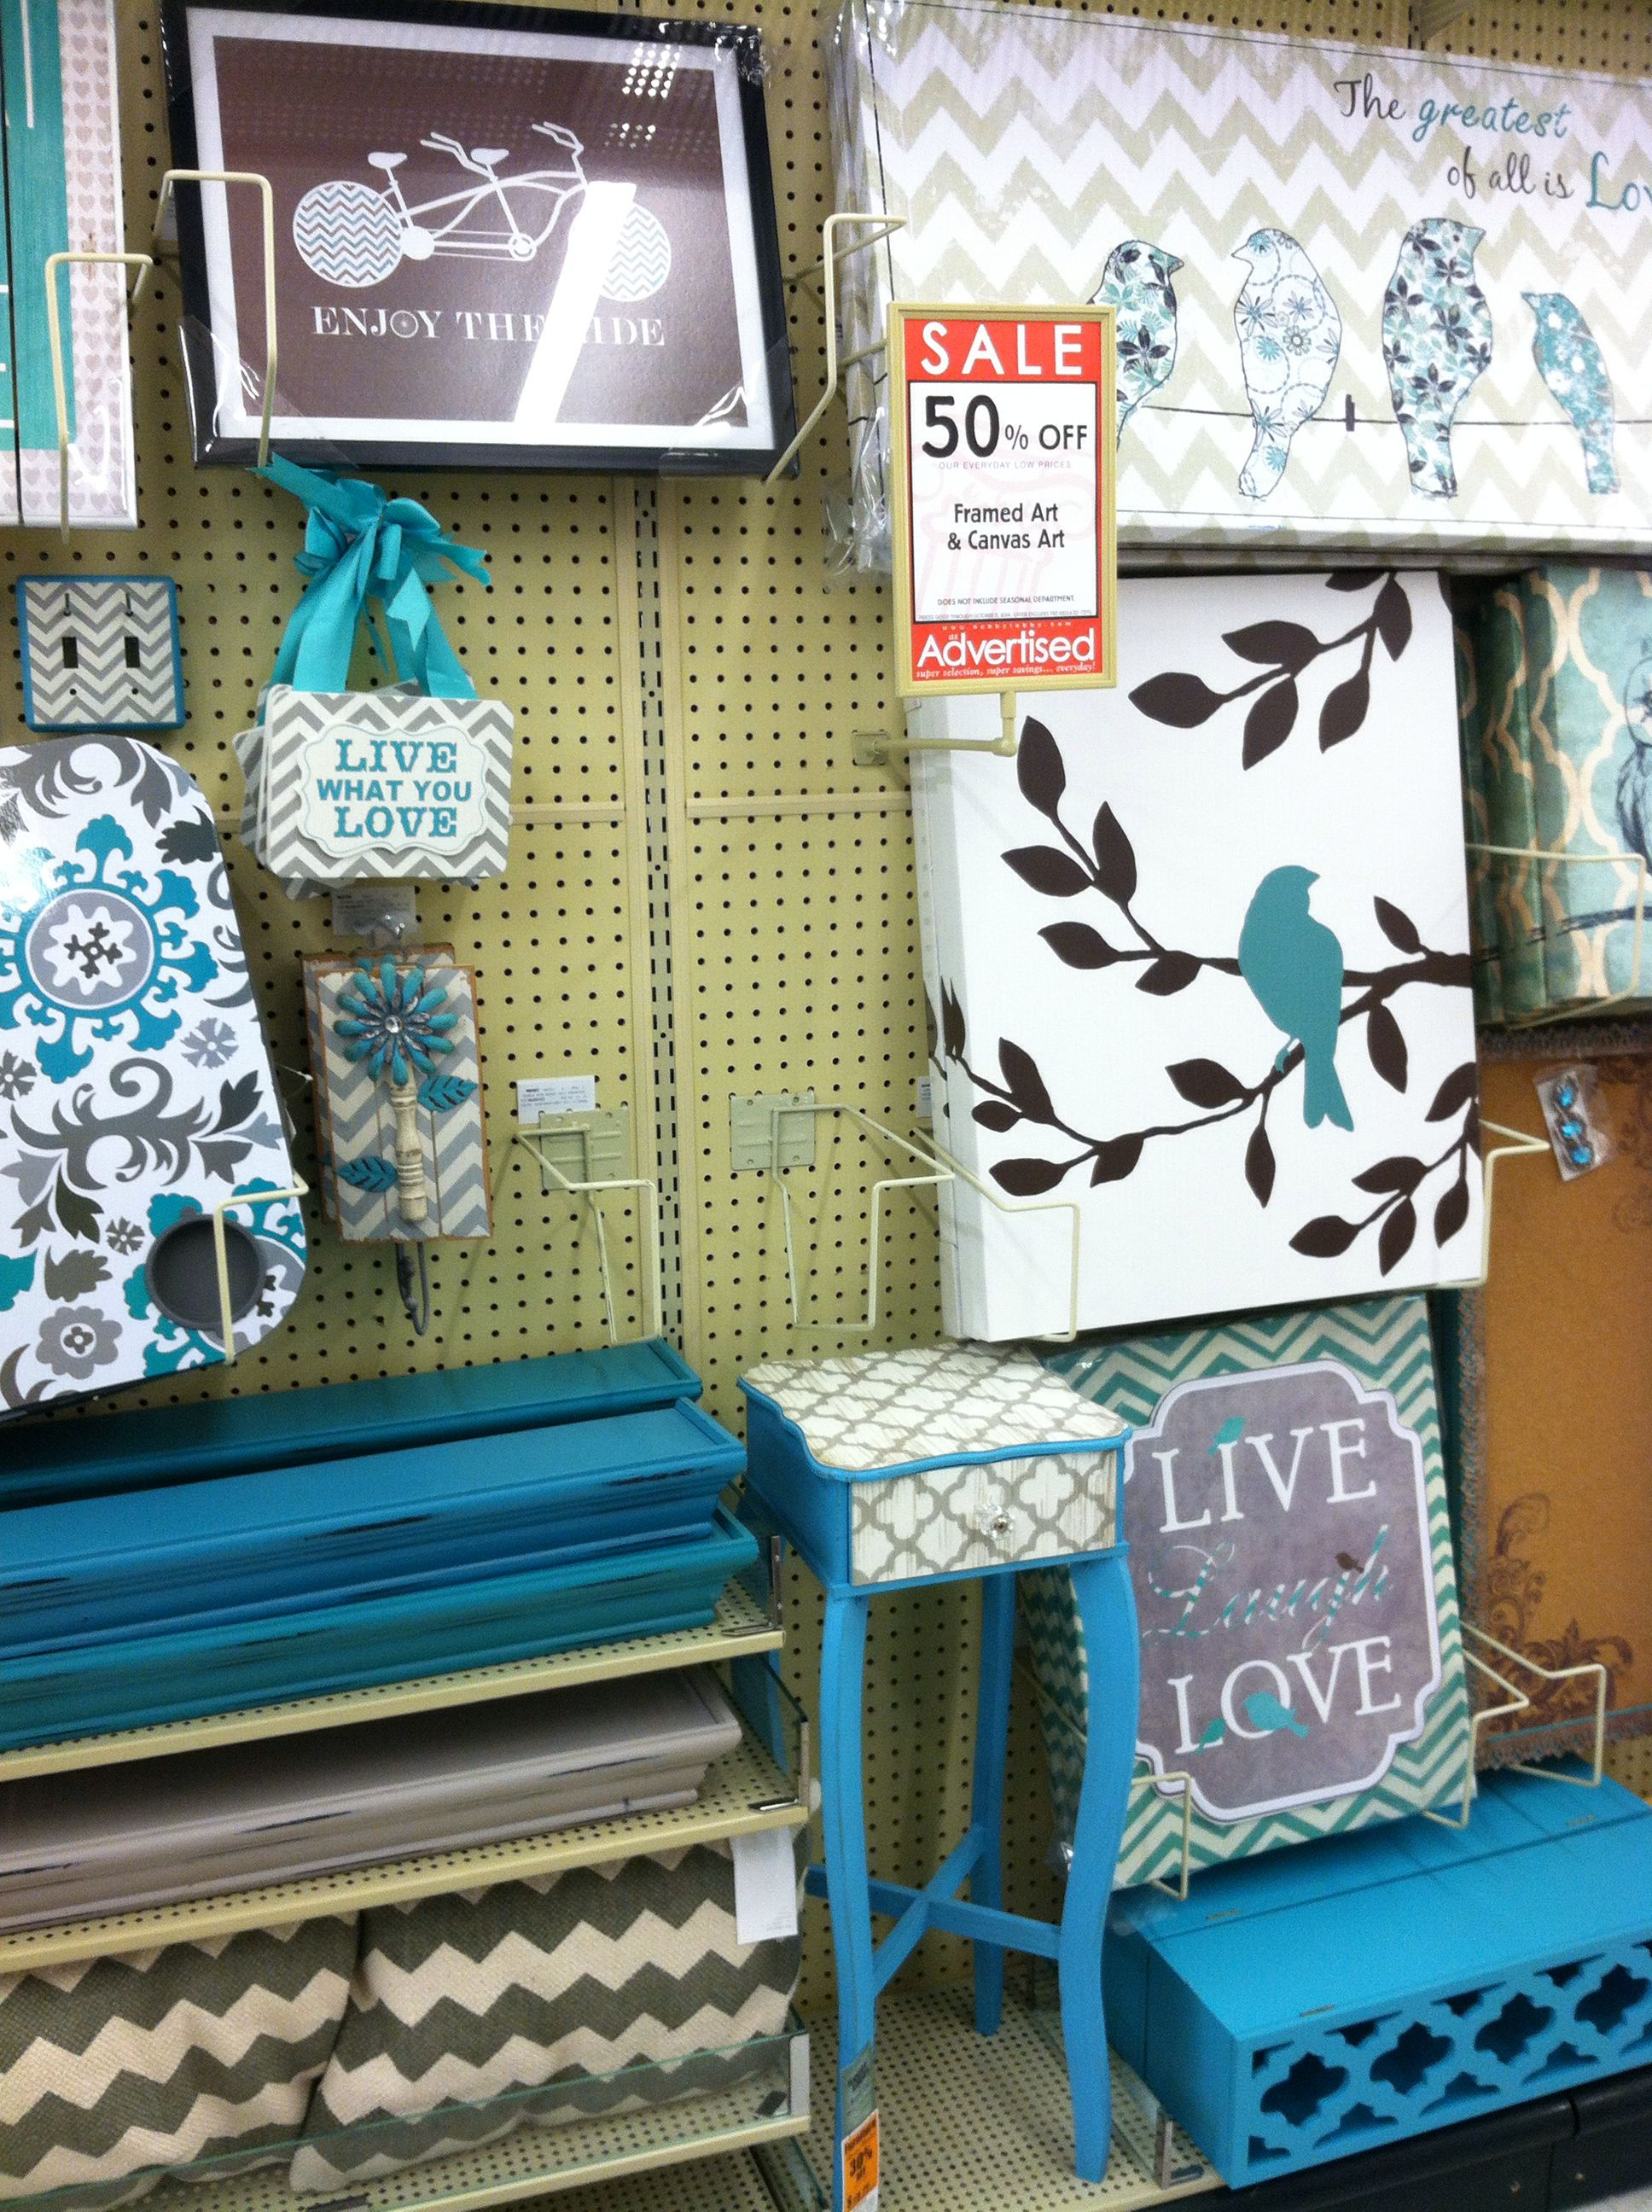 Gray And Teal Decor At Hobby Lobby Teal Decor Hobby Lobby Hobby